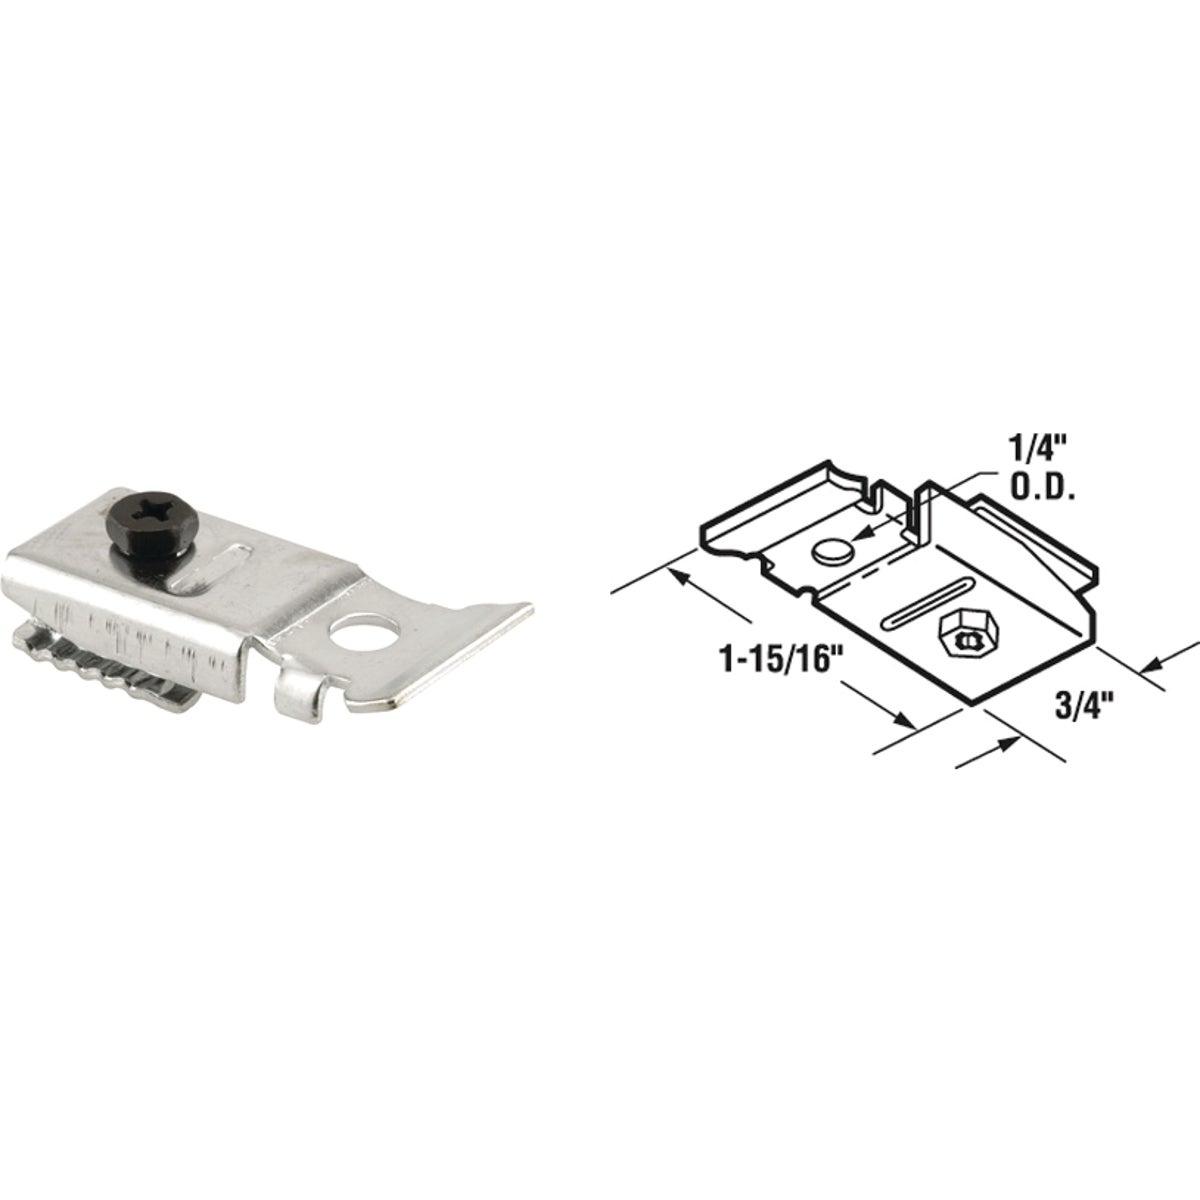 TOP PIVOT BRACKET